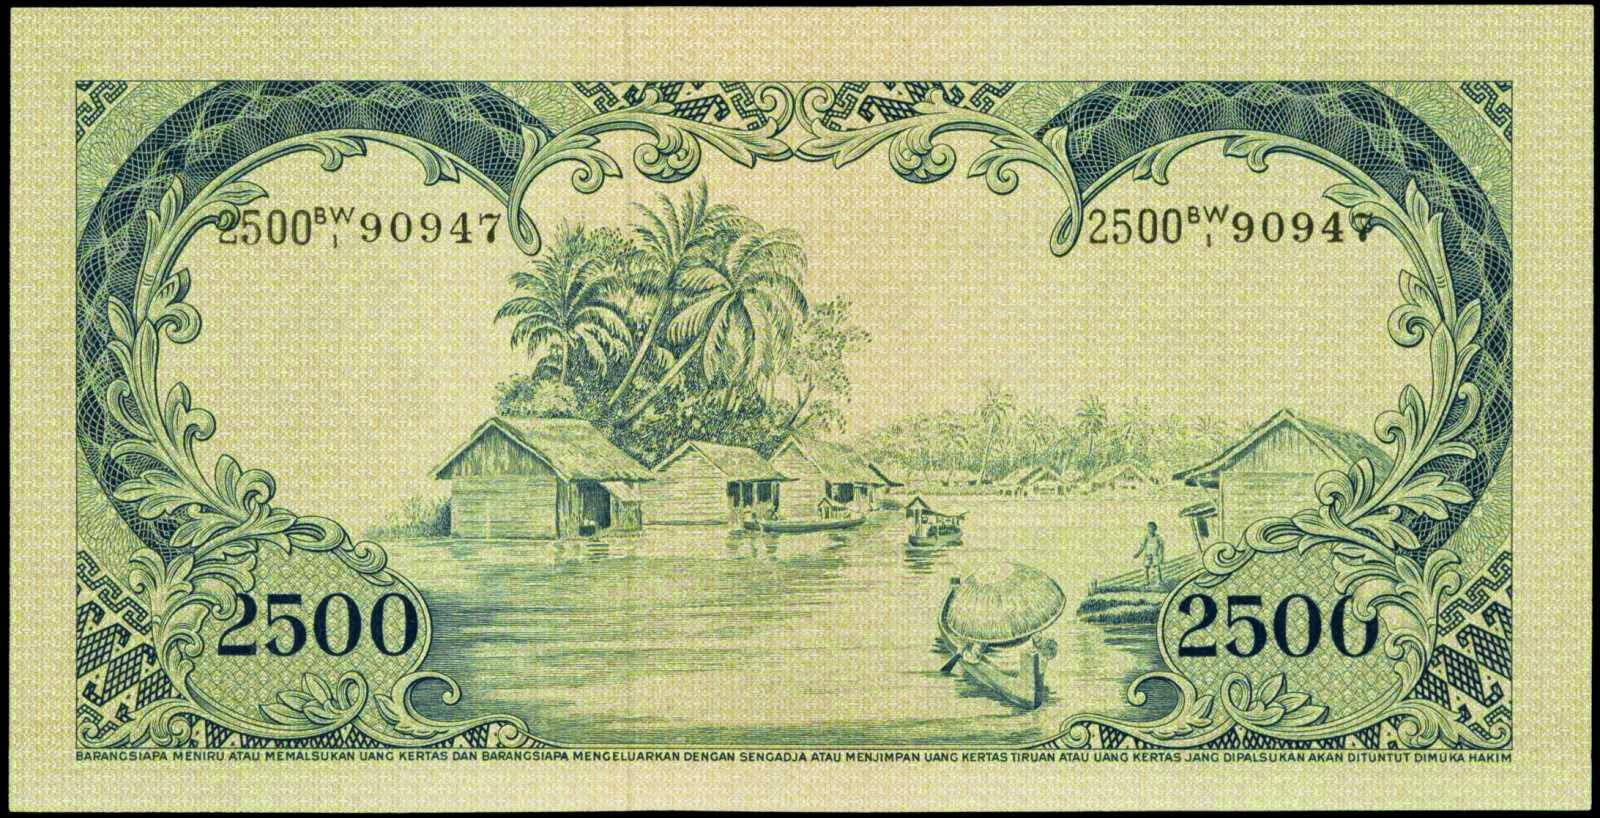 Indonesia paper money currency 2500 Rupiah banknote 1957